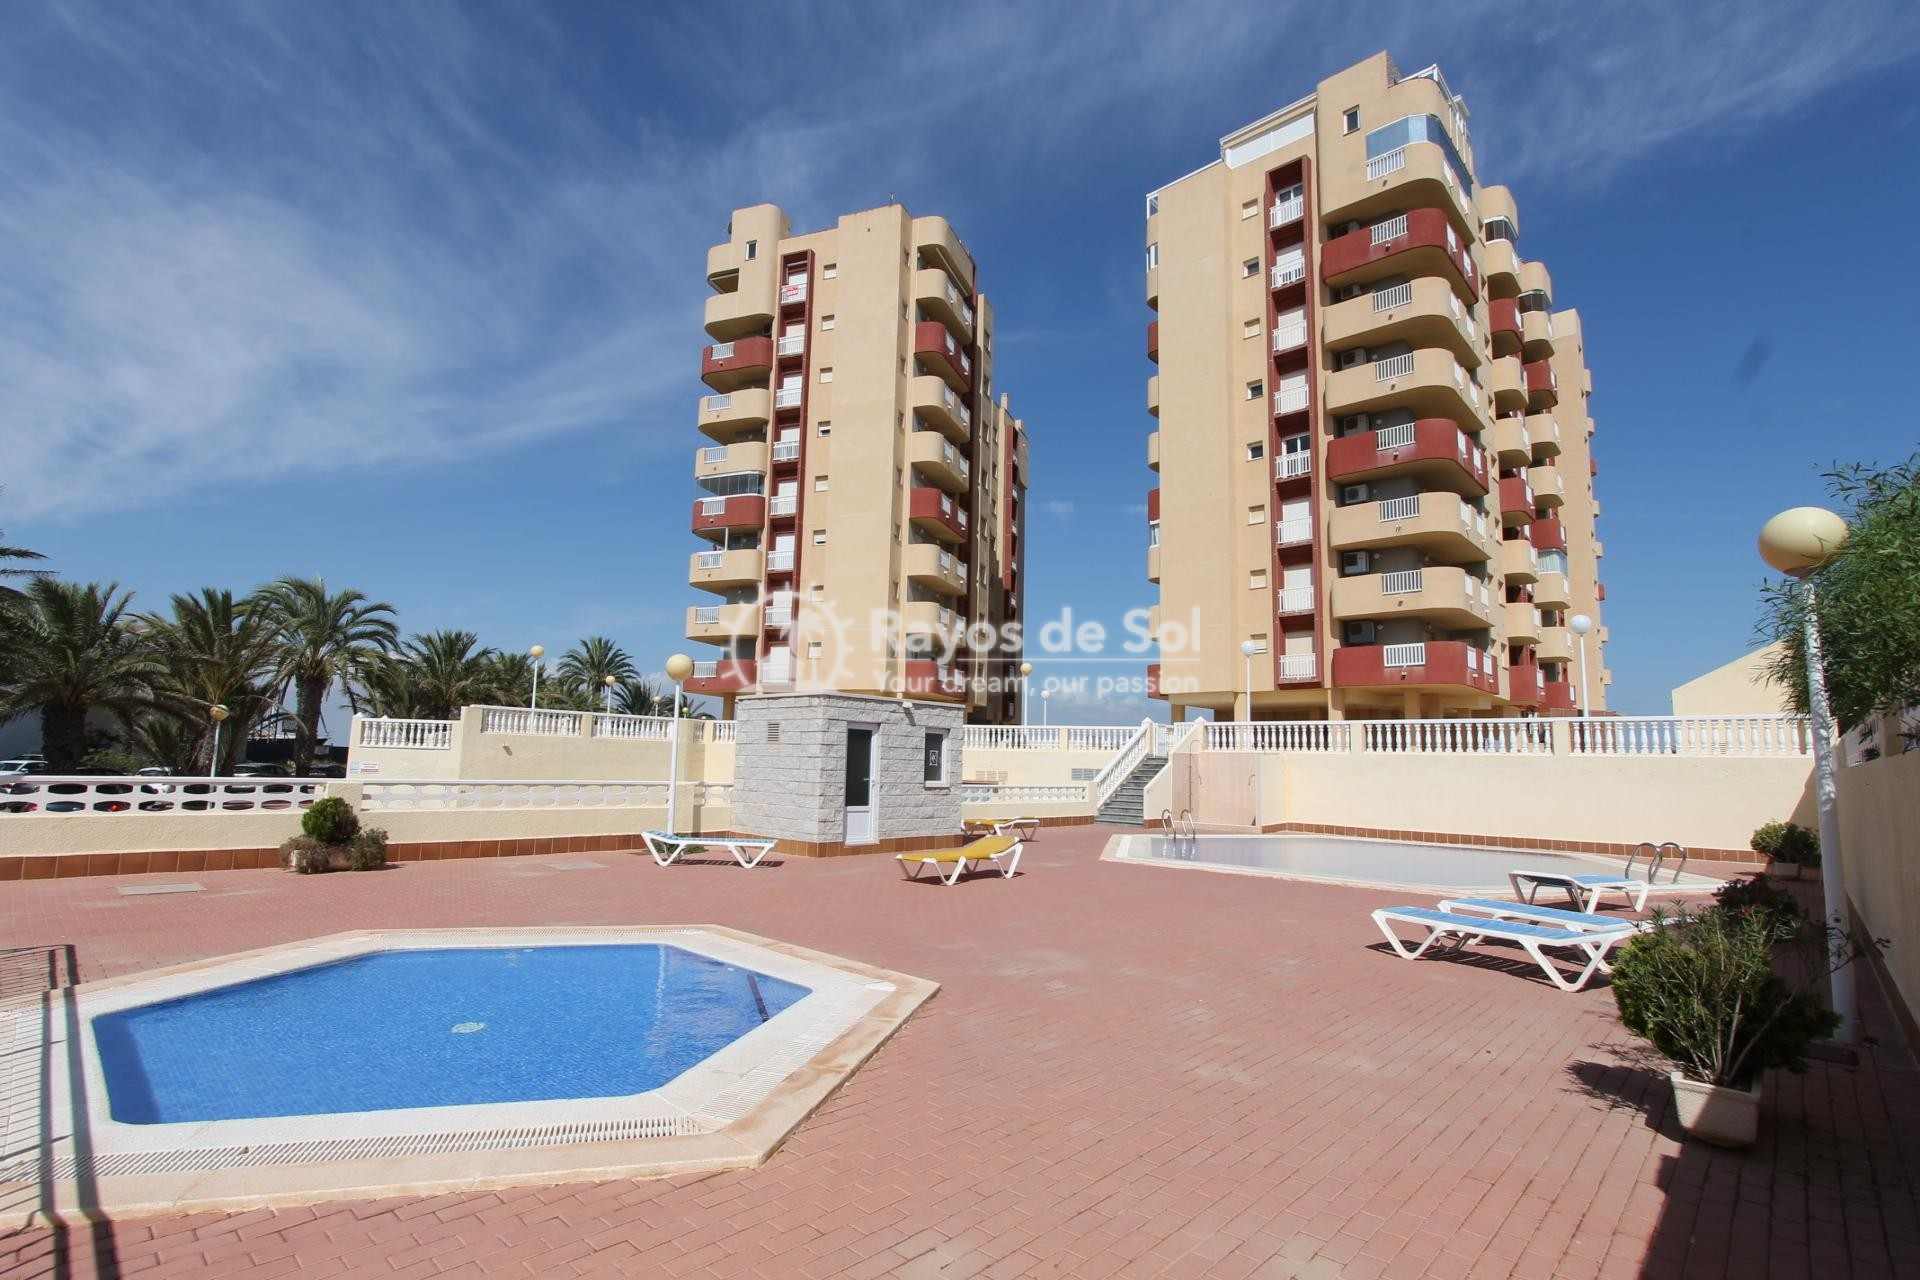 Apartment  in La Manga del Mar Menor, Costa Cálida (mp276) - 4